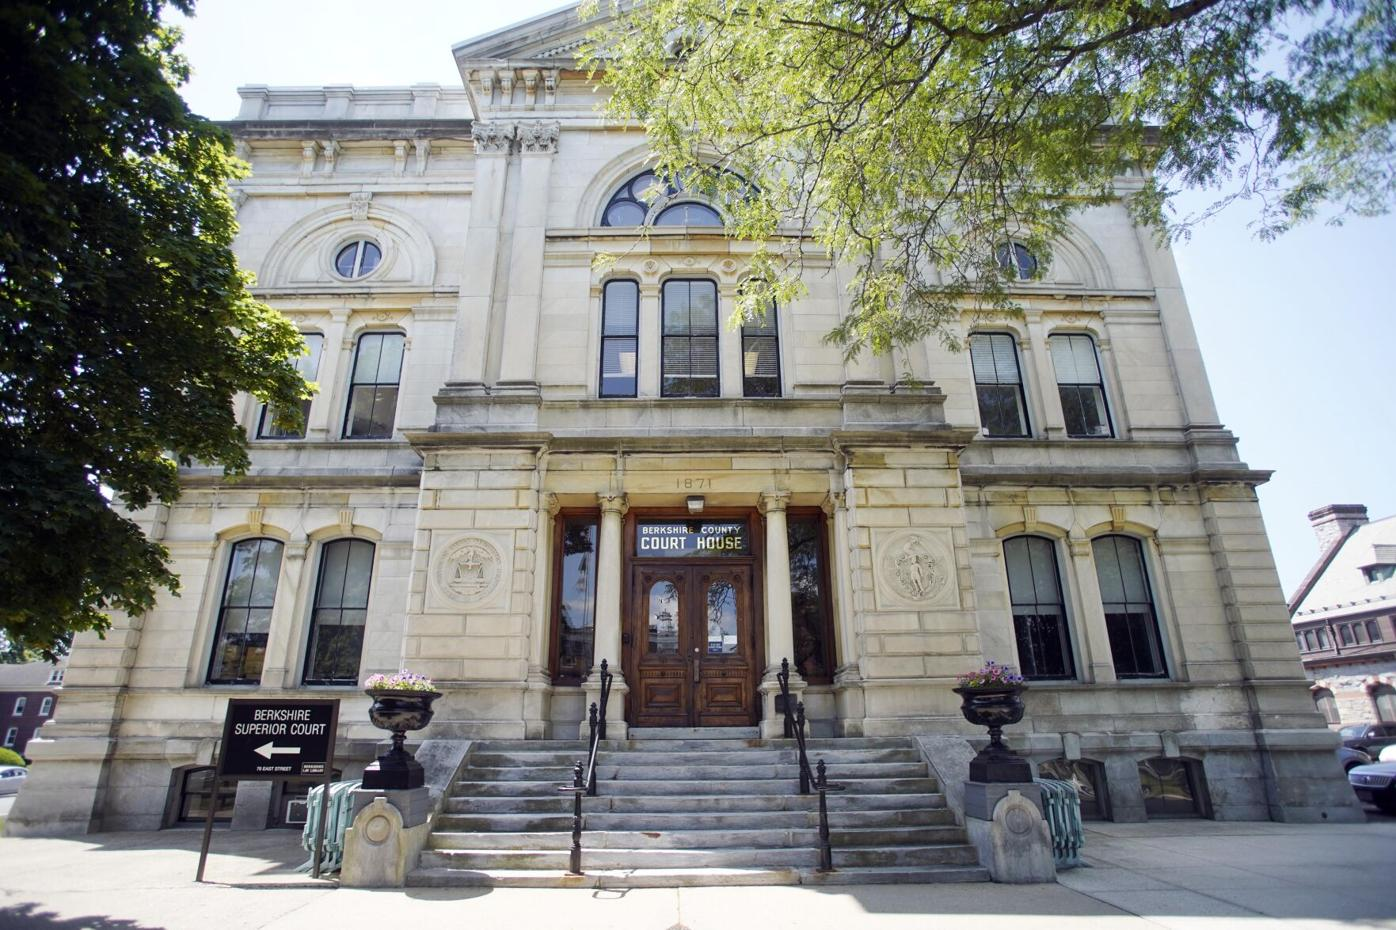 Berkshire courthouse (copy)